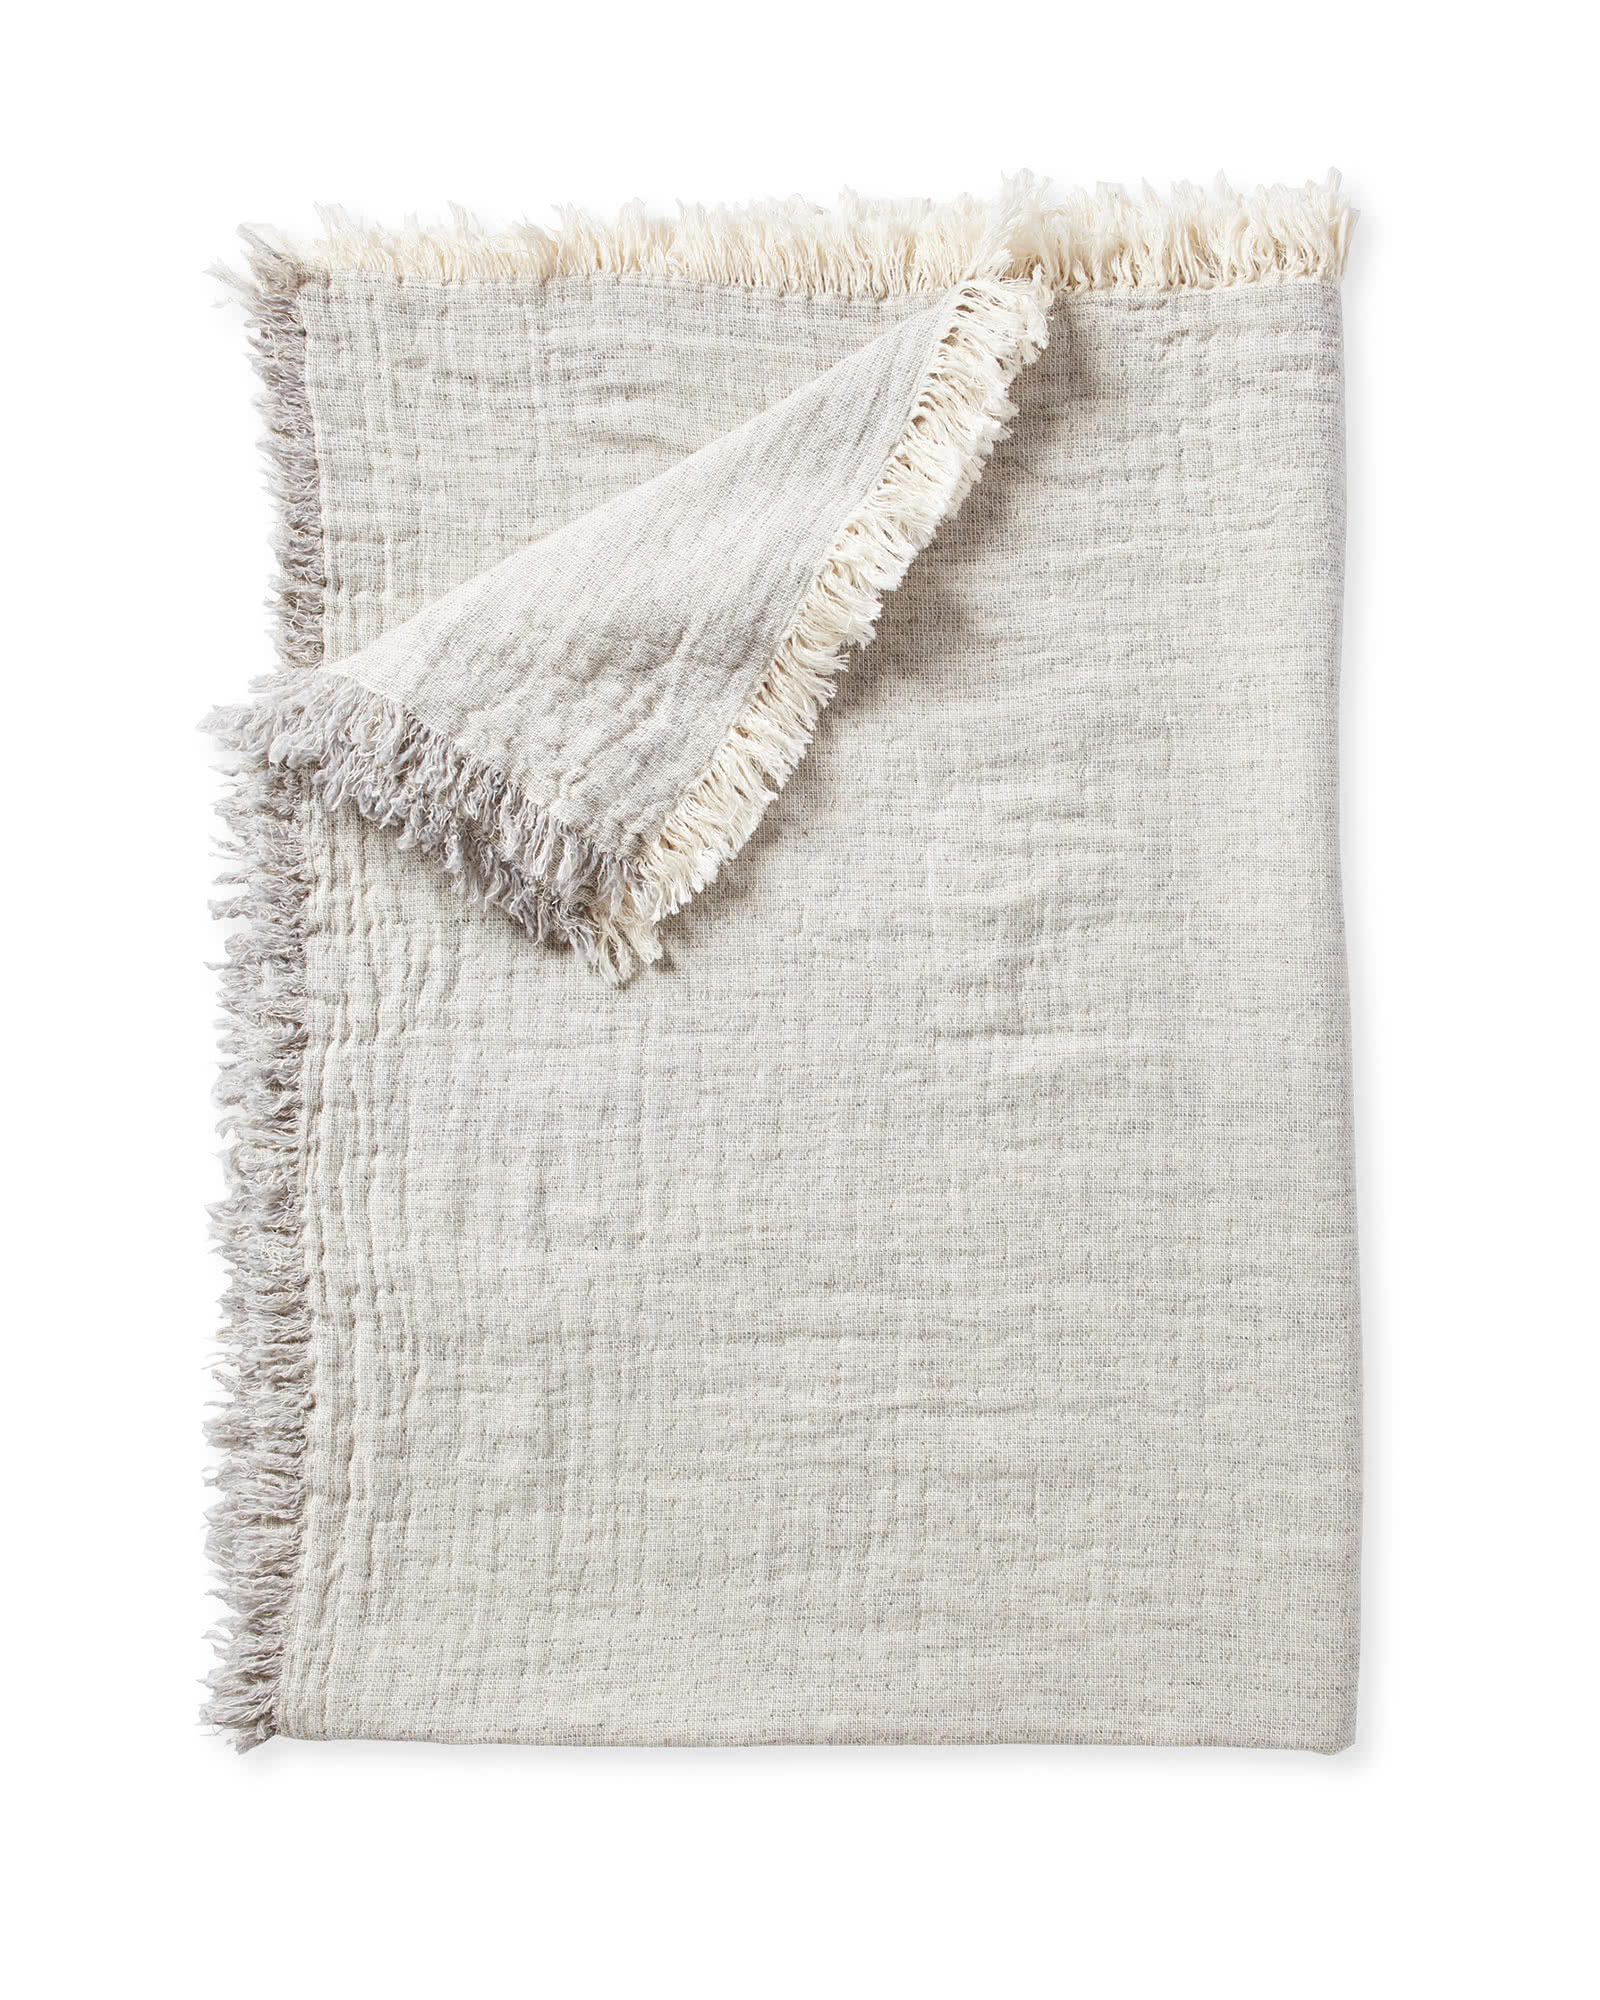 Skye Cotton Throw, Linen